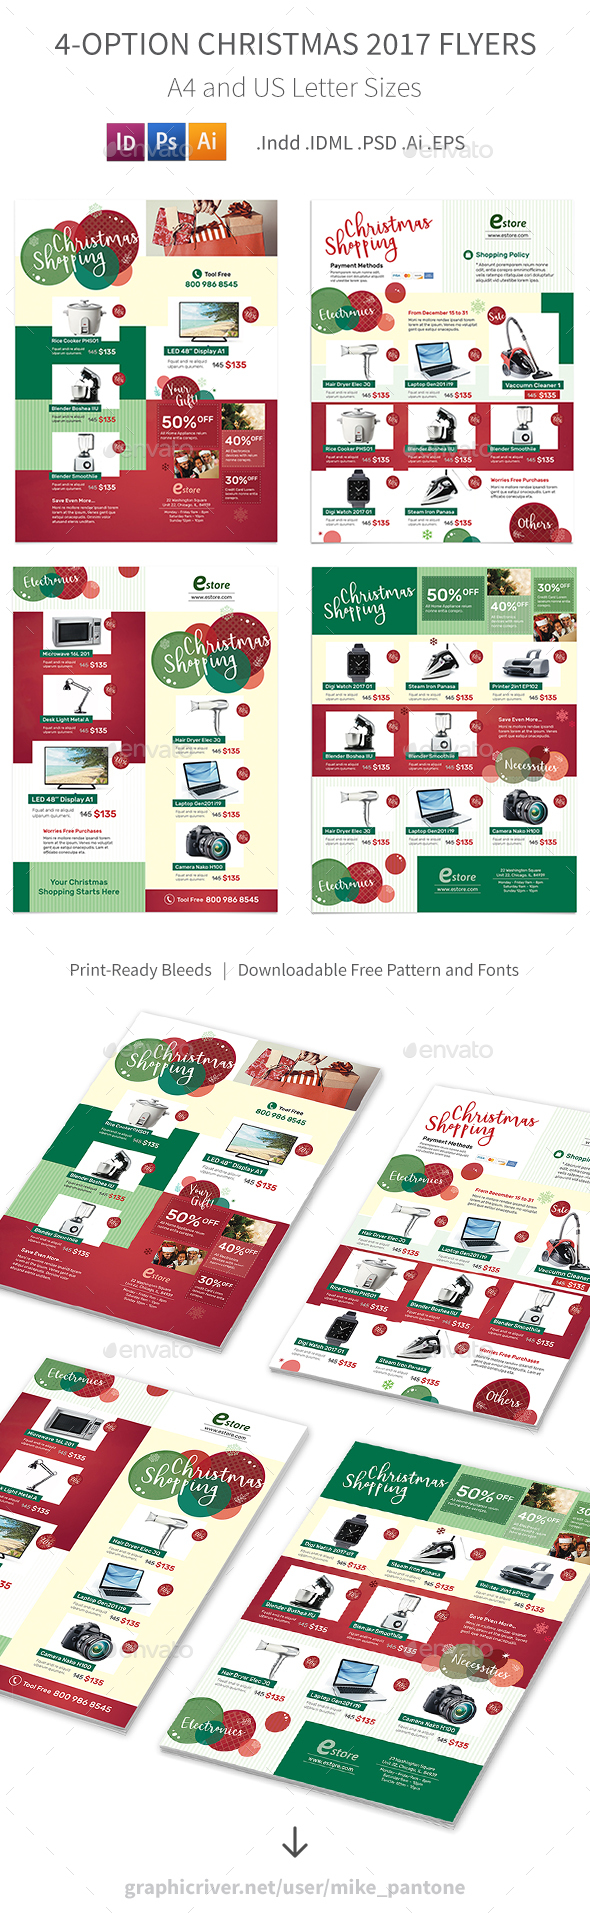 GraphicRiver Christmas 2017 Flyers 4 Options 20979713